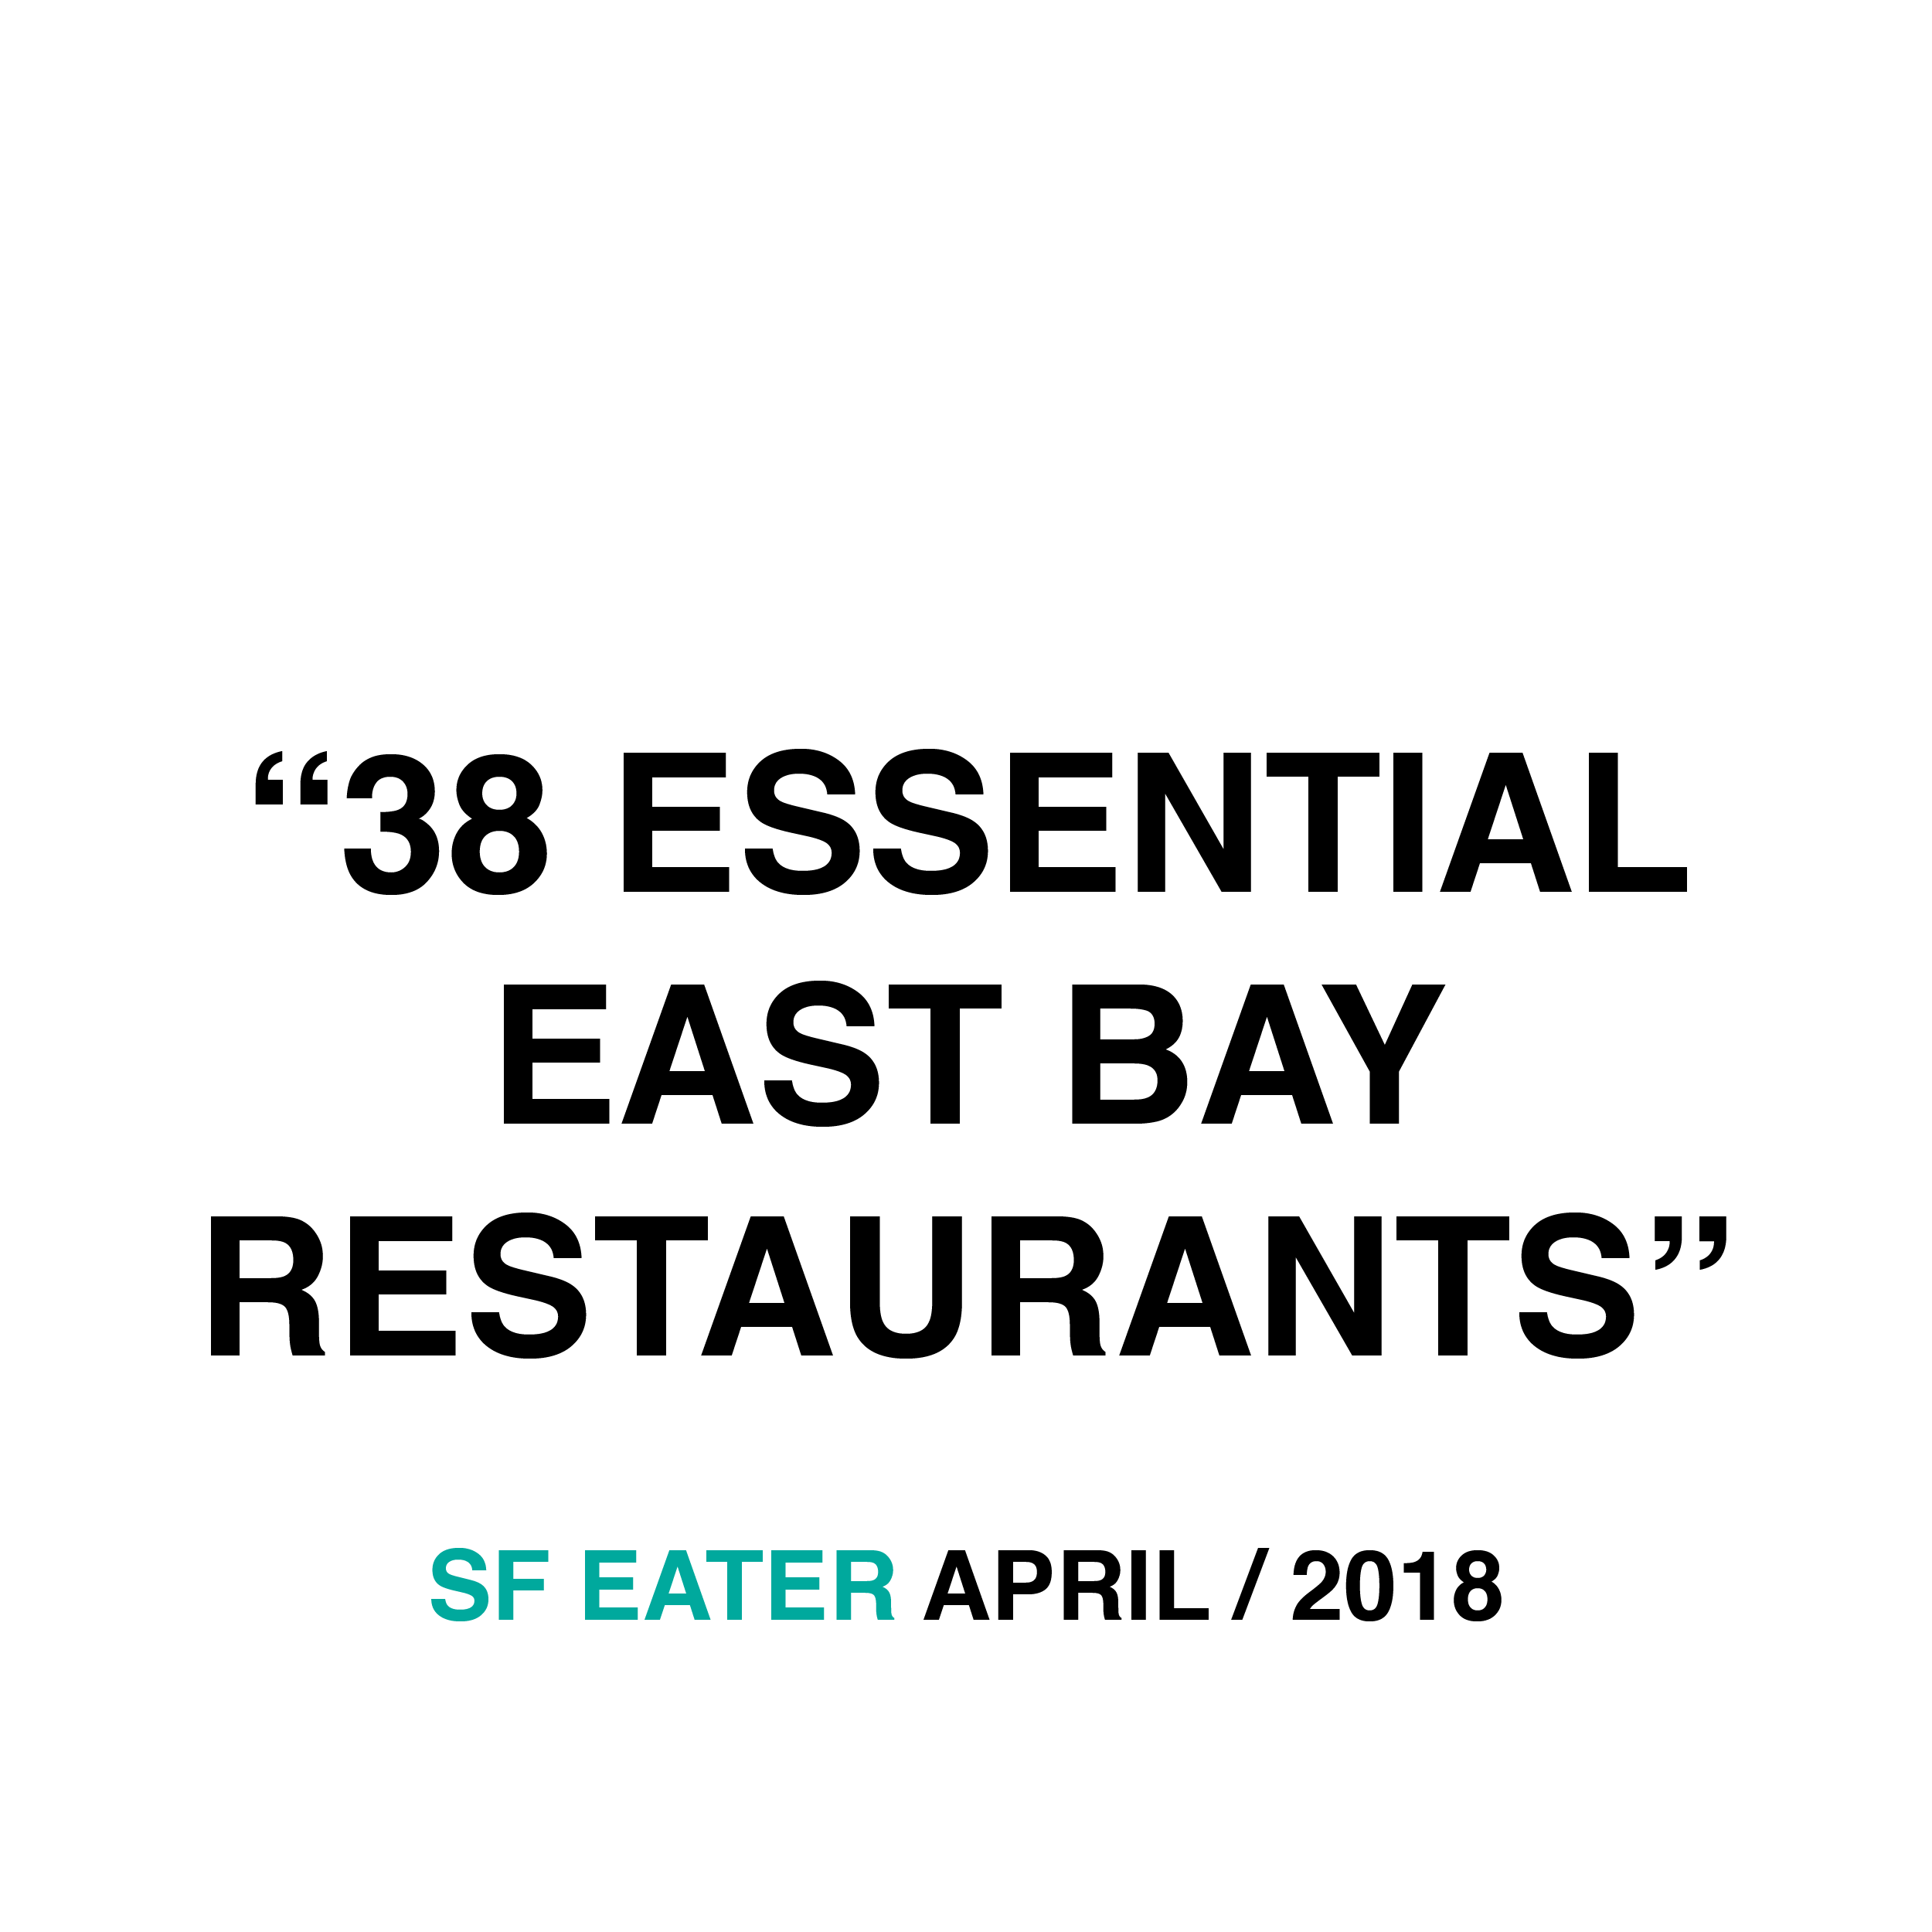 ESSENTIAL-EAST-BAY-01.png